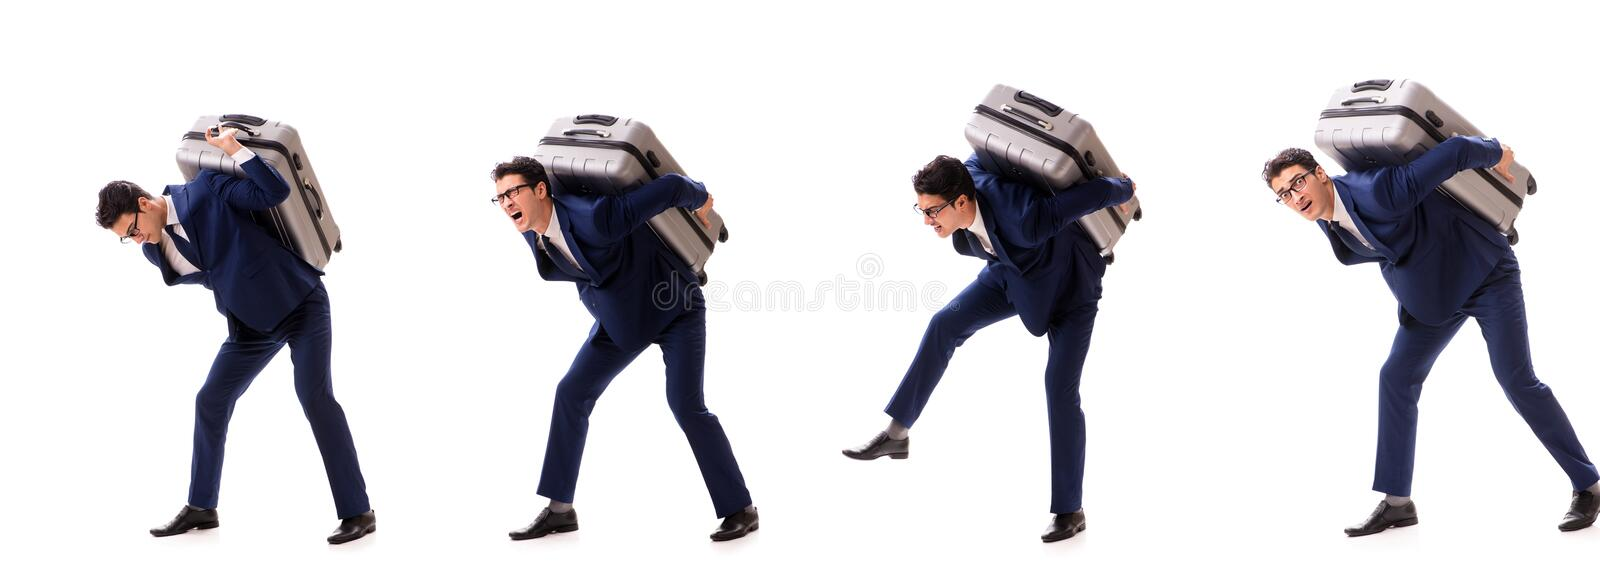 The businessman facing excess charges due to heavy suitcase. Businessman facing excess charges due to heavy suitcase stock photo